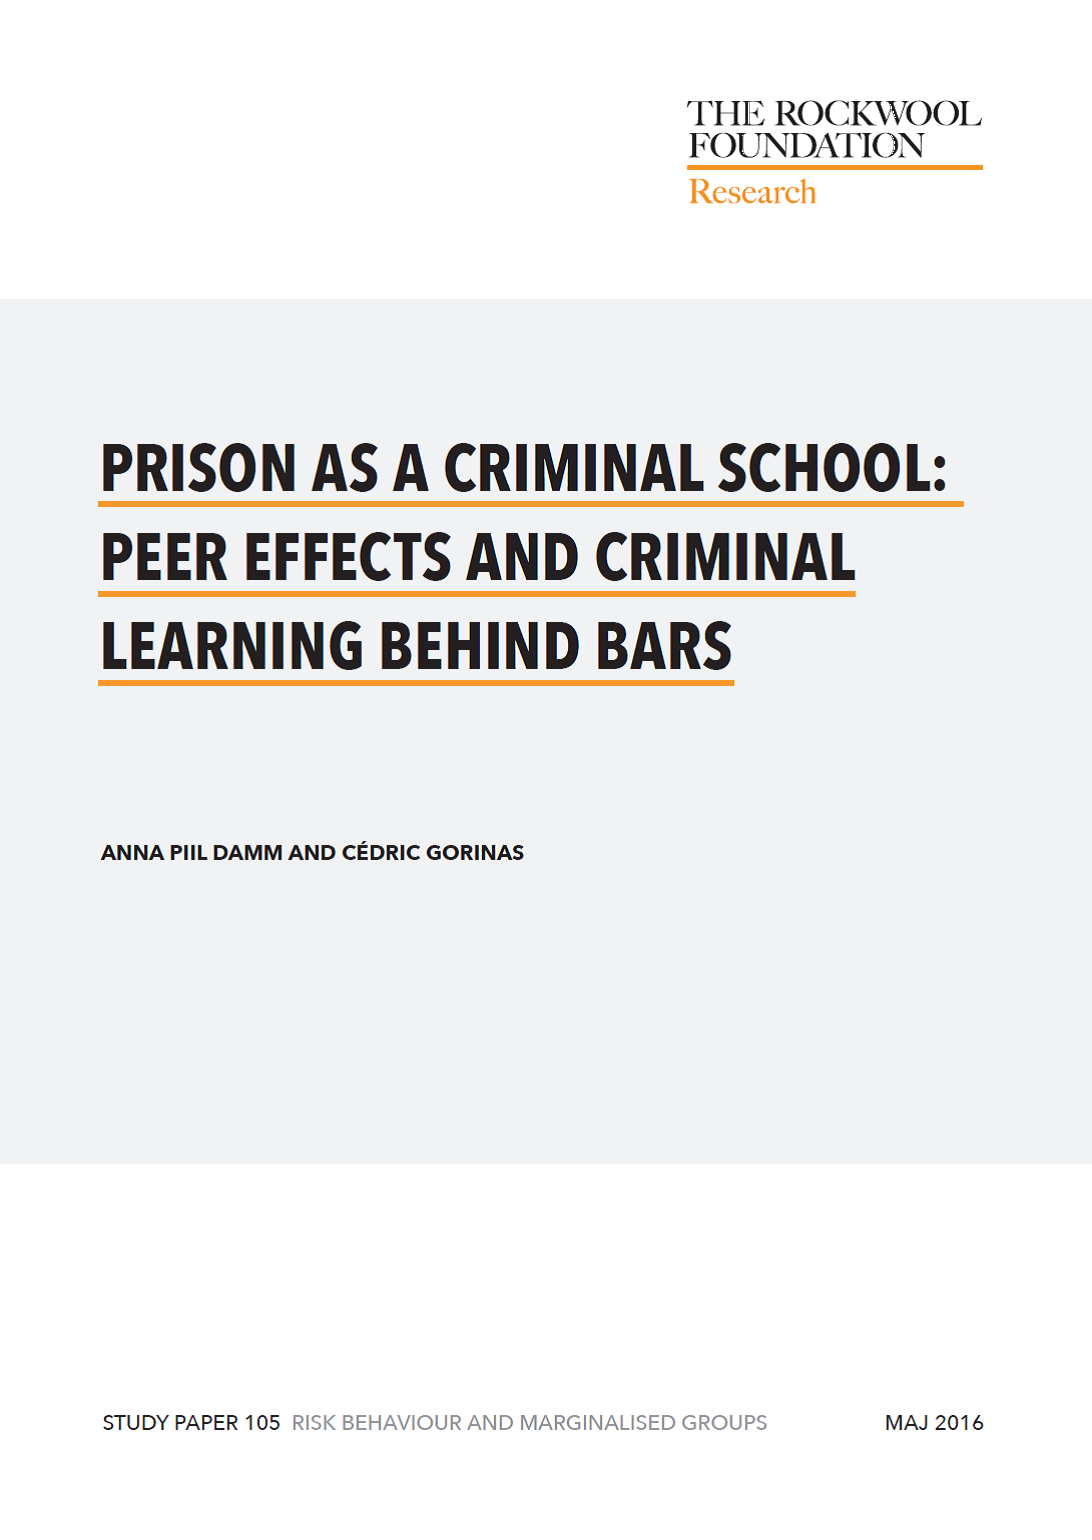 Learning Behind Bars >> Prison As A Criminal School Peer Effects And Criminal Learning